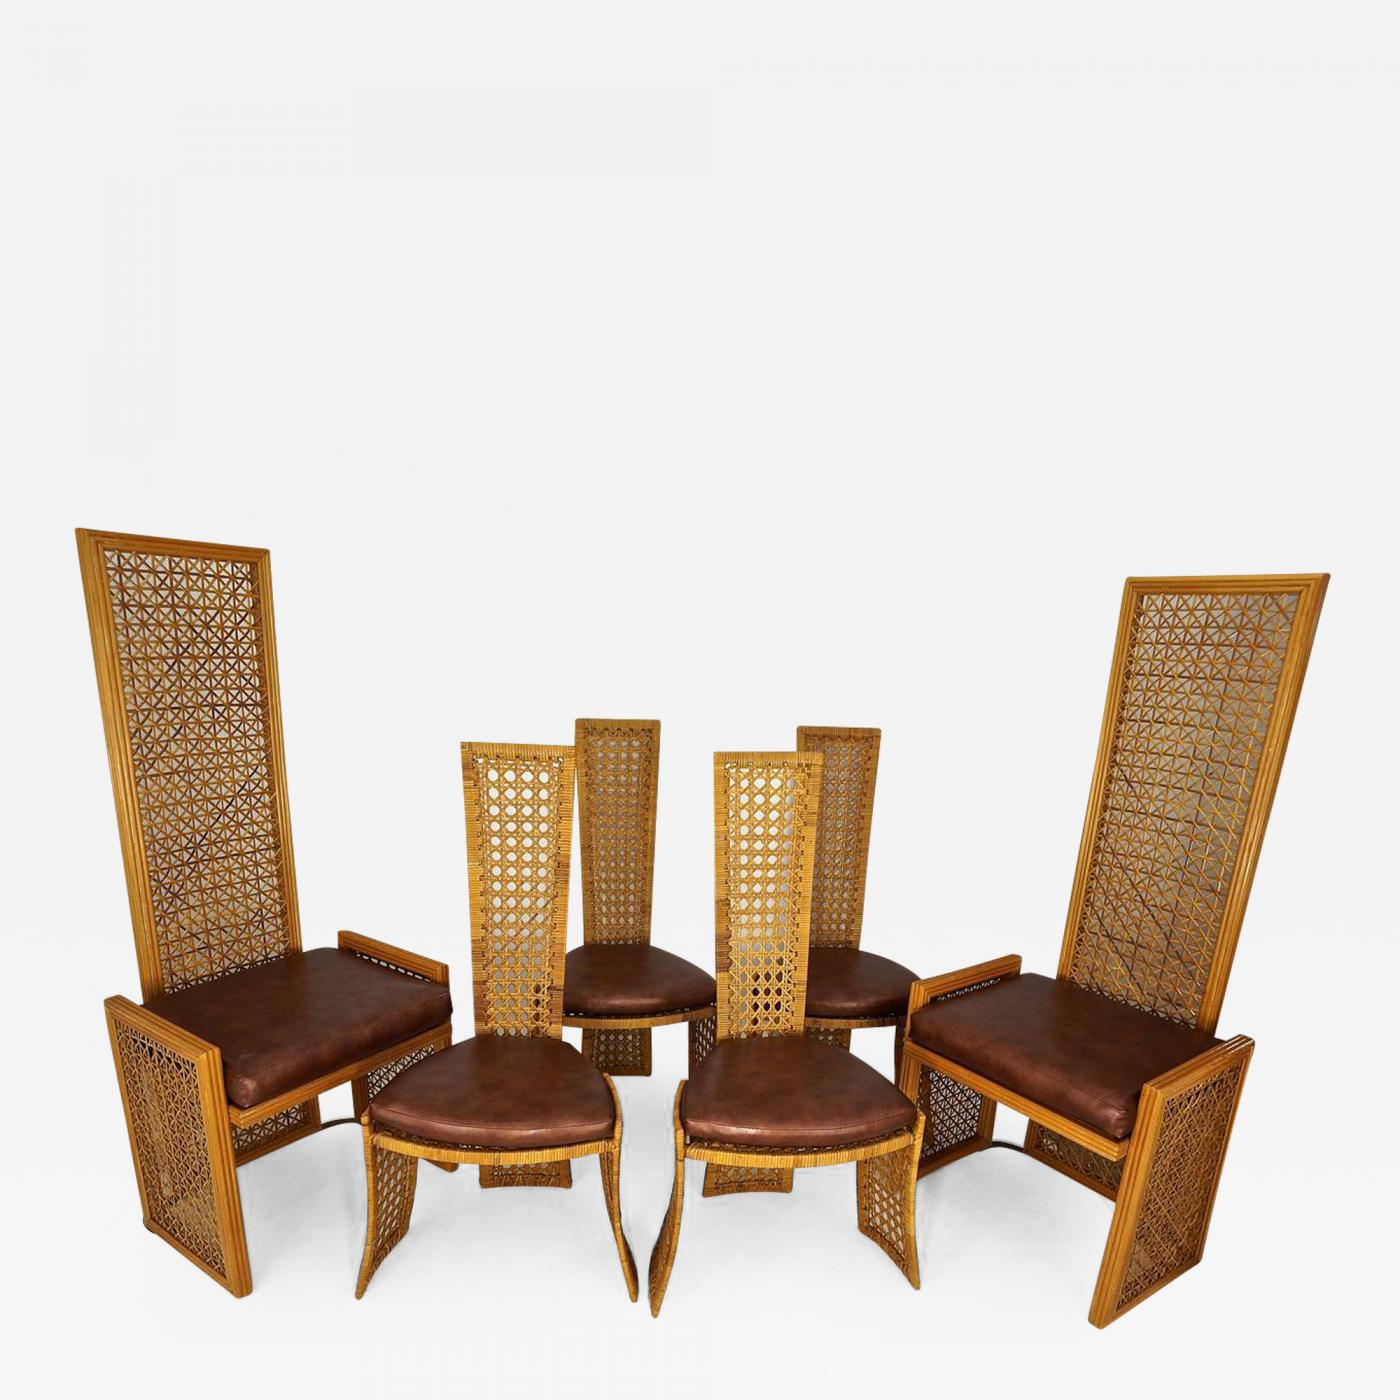 dining chairs with caning walmart dorm chair vivai del sud set of eight french casa bella danny ho fong style